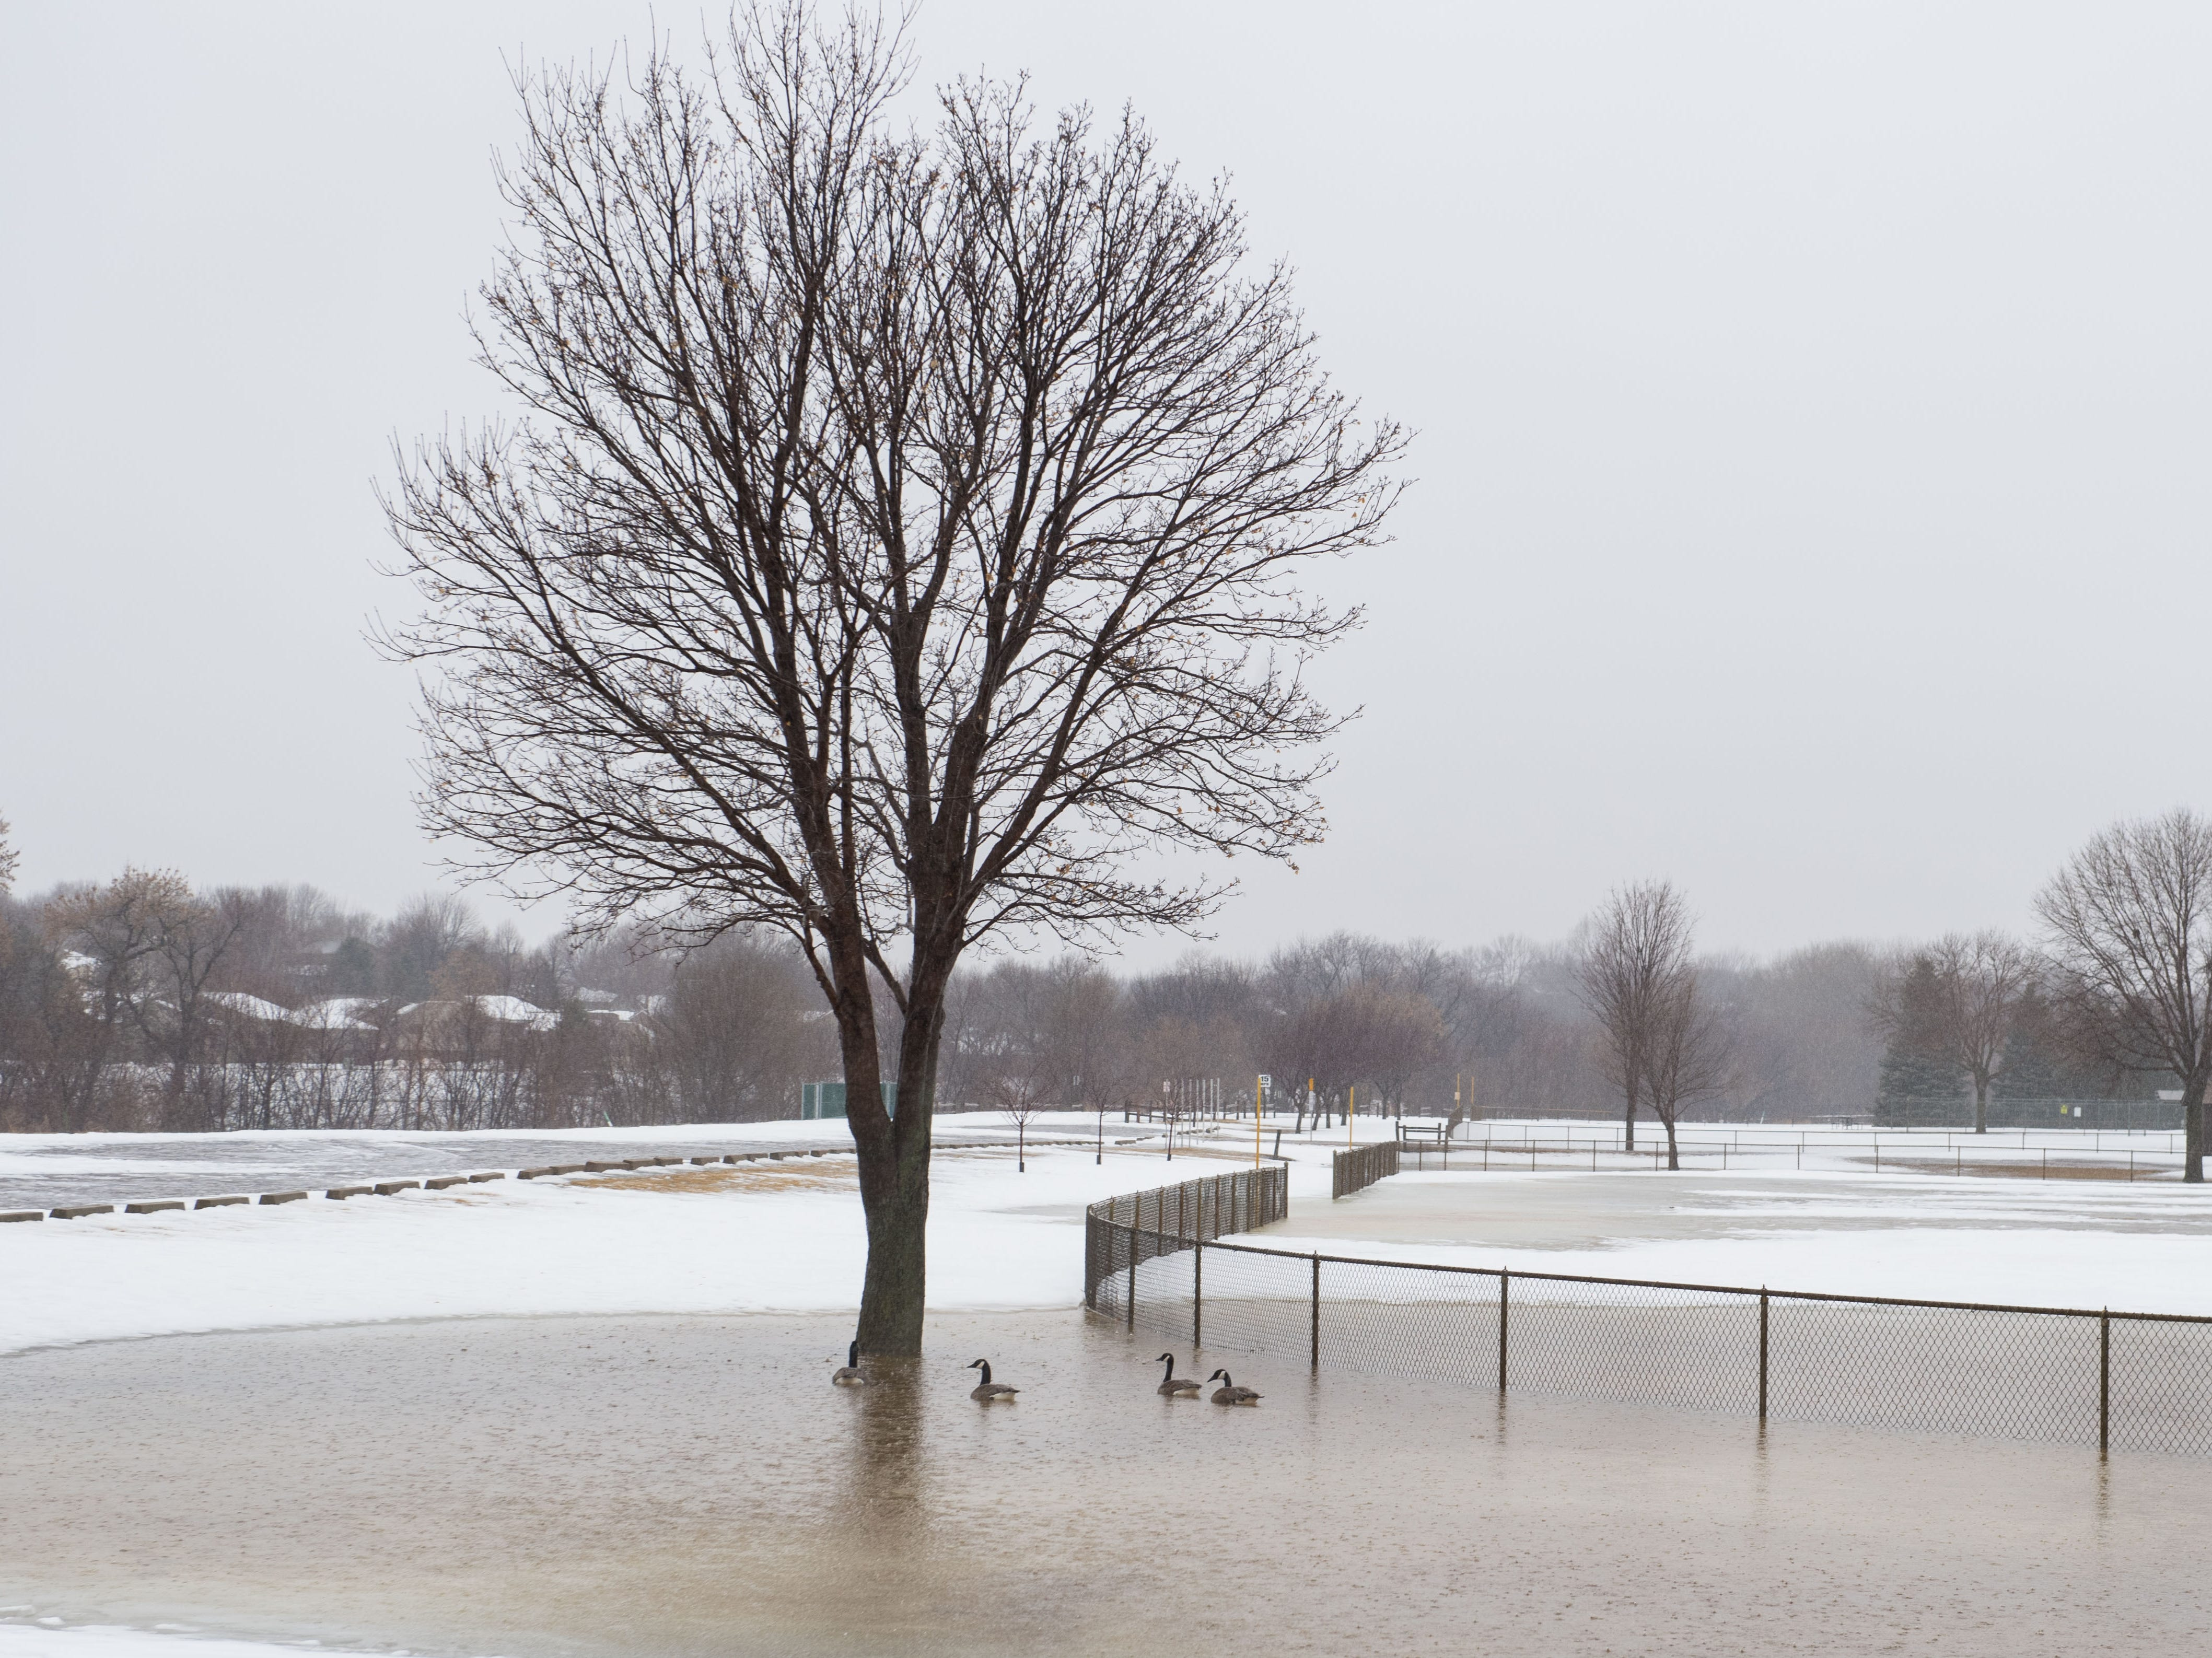 Dunham Park in Sioux Falls, S.D. is shown Wednesday, March 13, 2019.